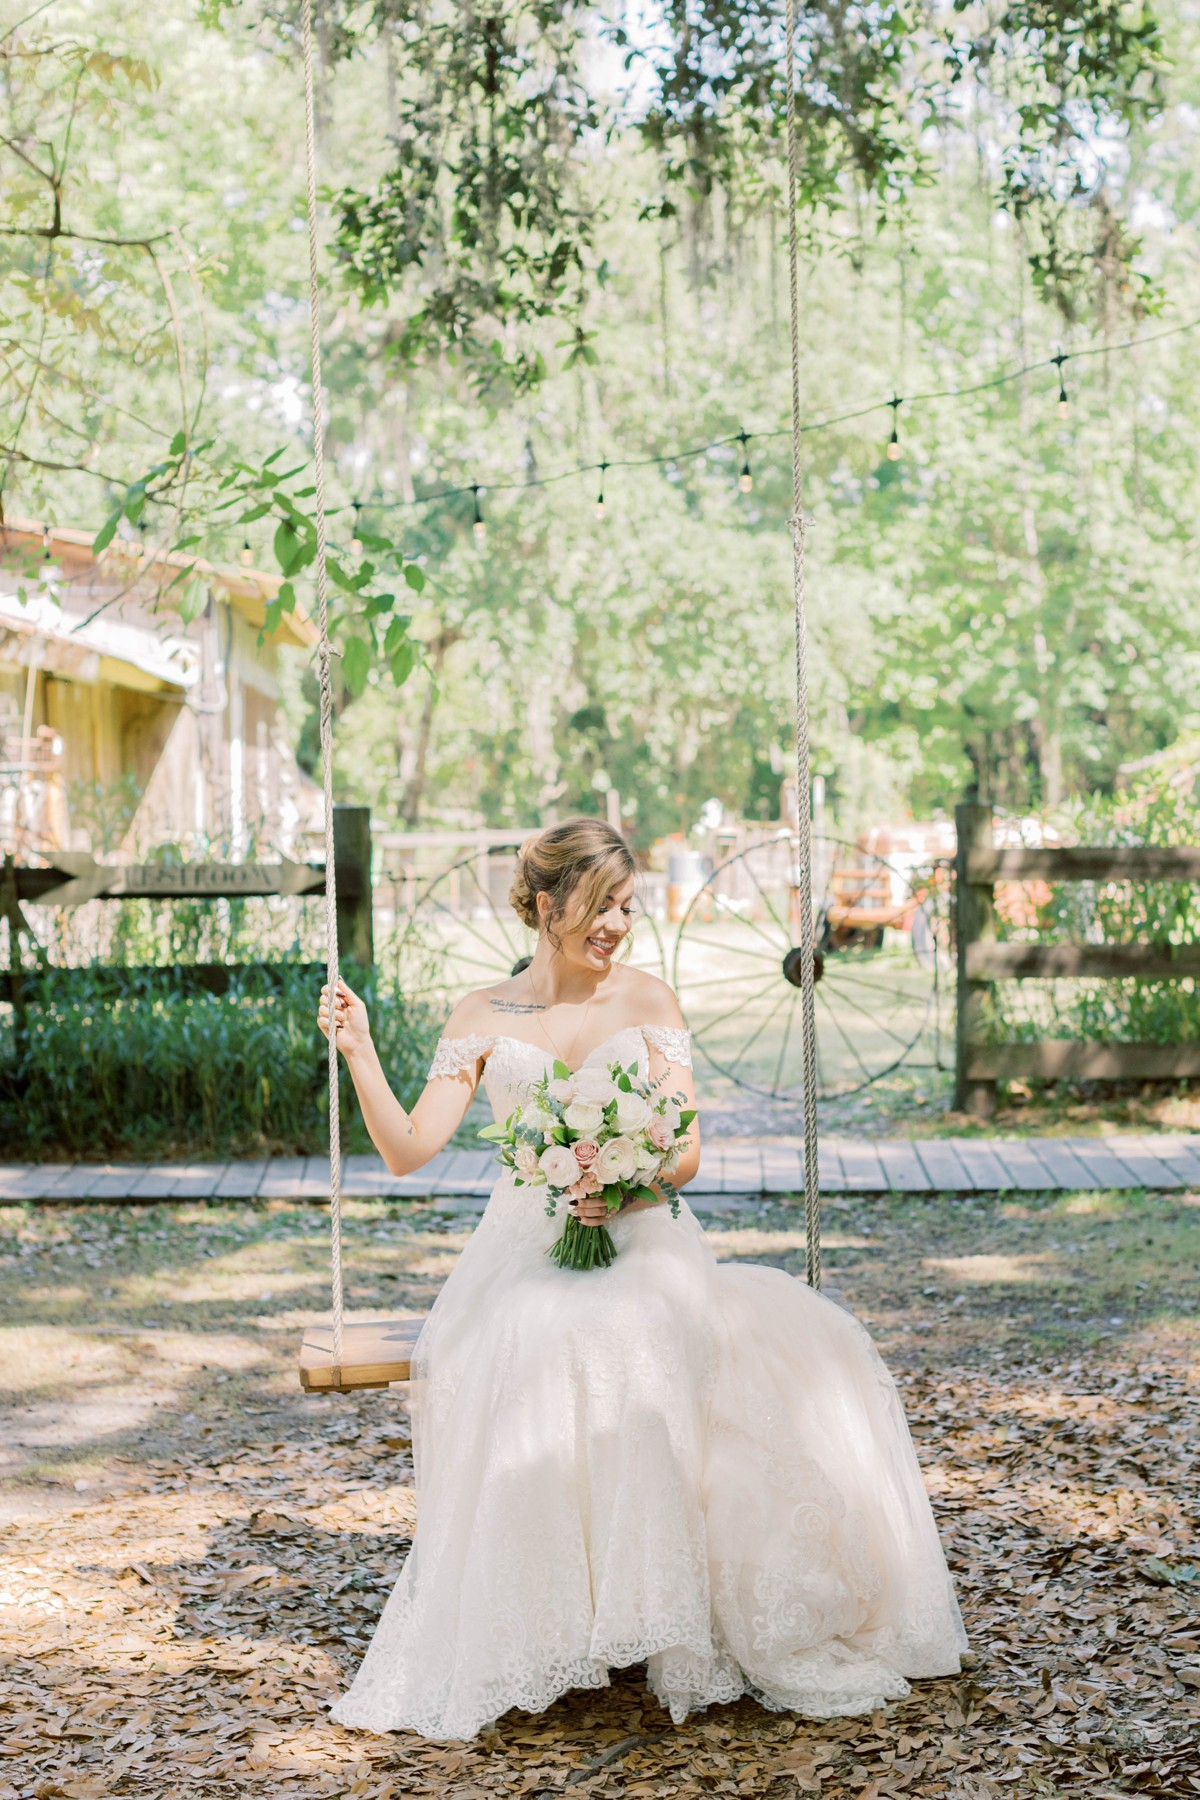 Bressler-Wedding-Preview-Tuckers-Farmhouse-Jacksonville-Wedding-Photographer-Chantell-Rae022.jpg